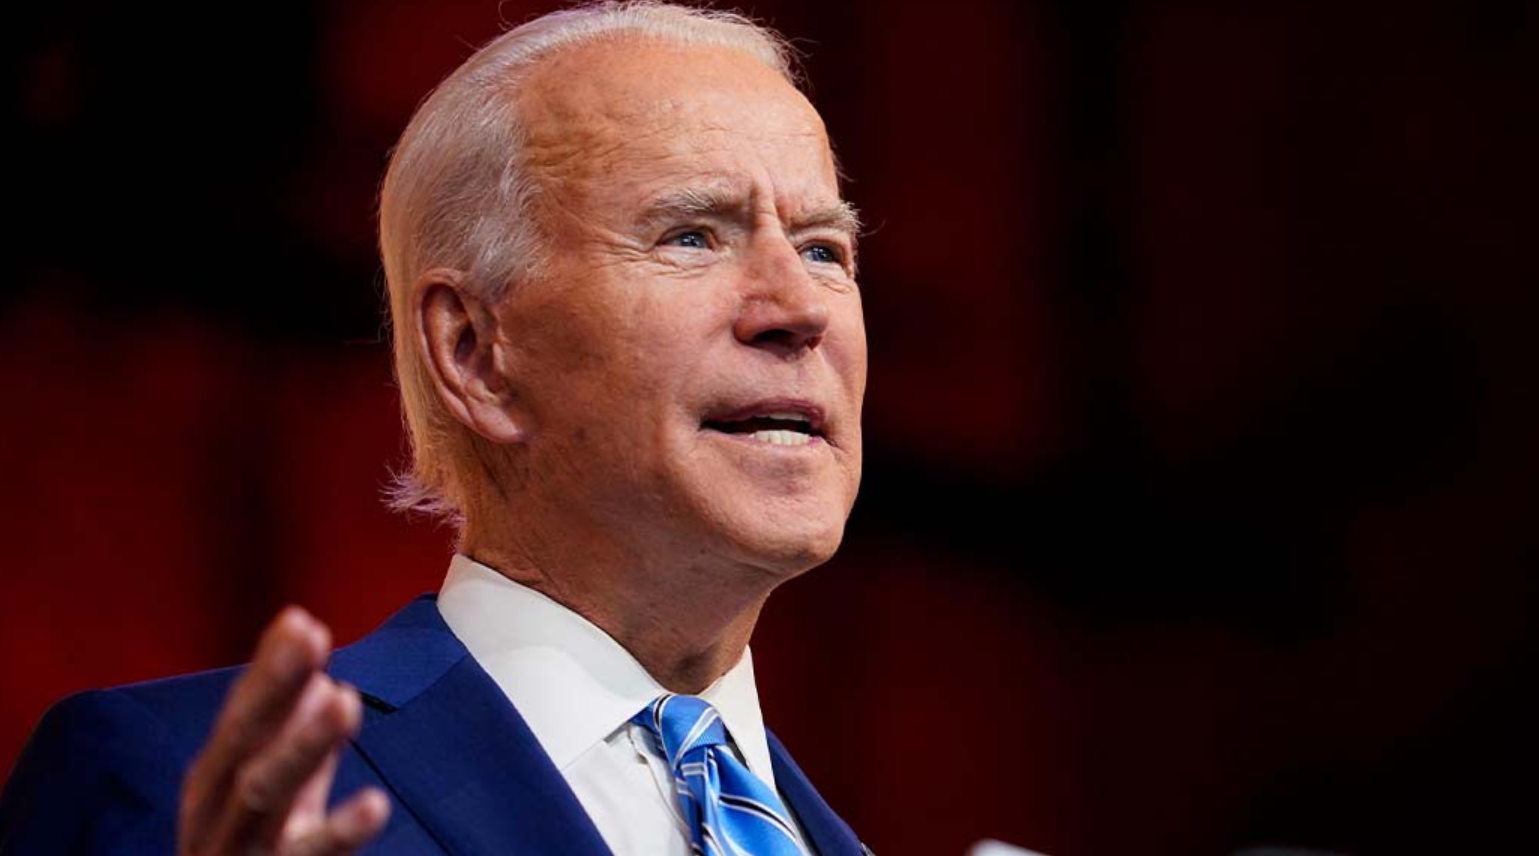 cnn-announces-the-biden-administration-may-launch-private-firms-to-watch-u-s-citizens-without-surveillance-warrants